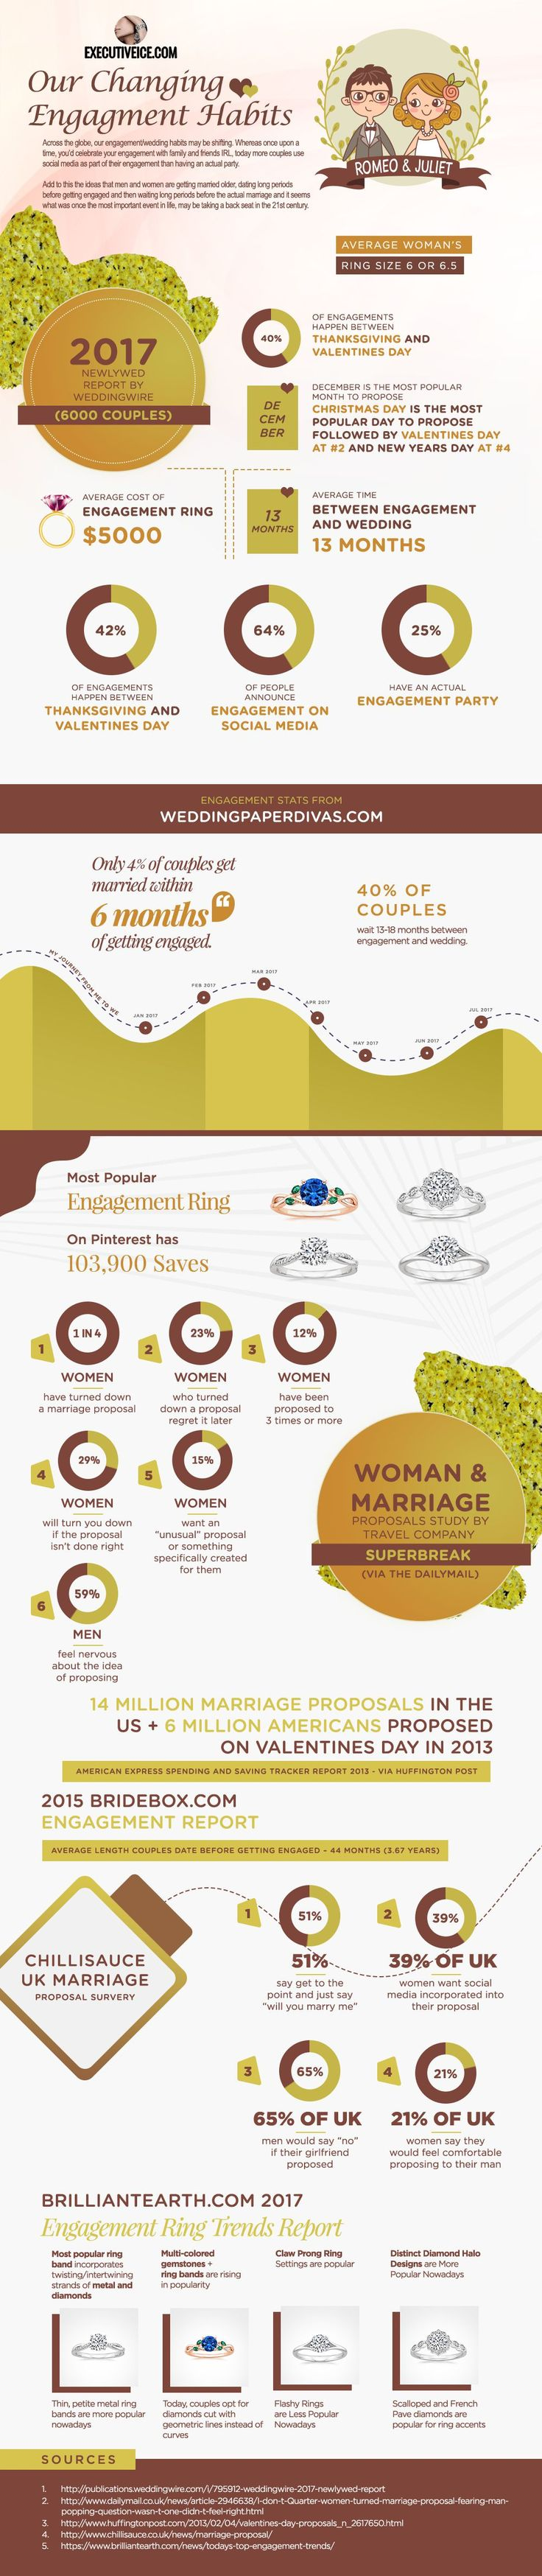 Our Changing Engagement/Marriage Habits in 2017